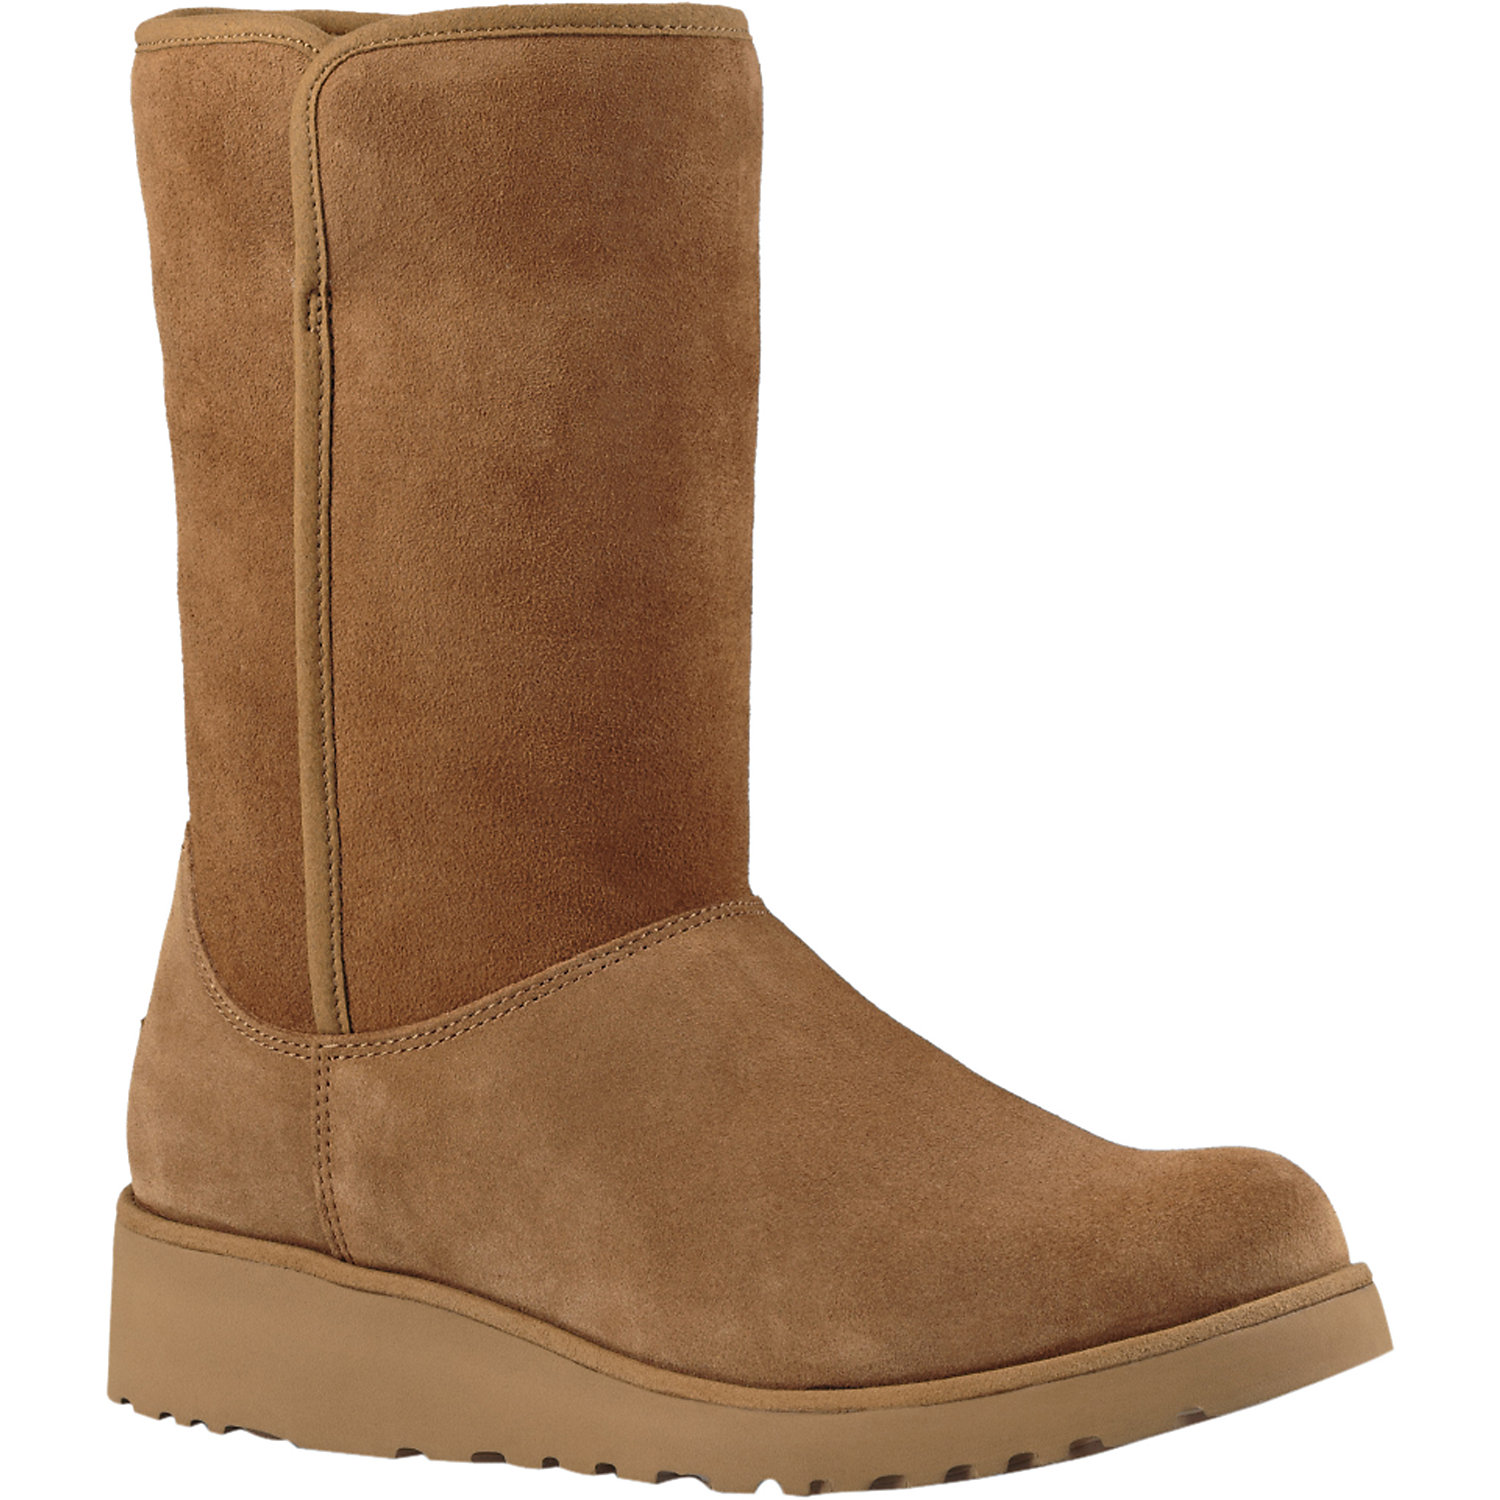 9b09111f80d Ugg Women's Amie Boot